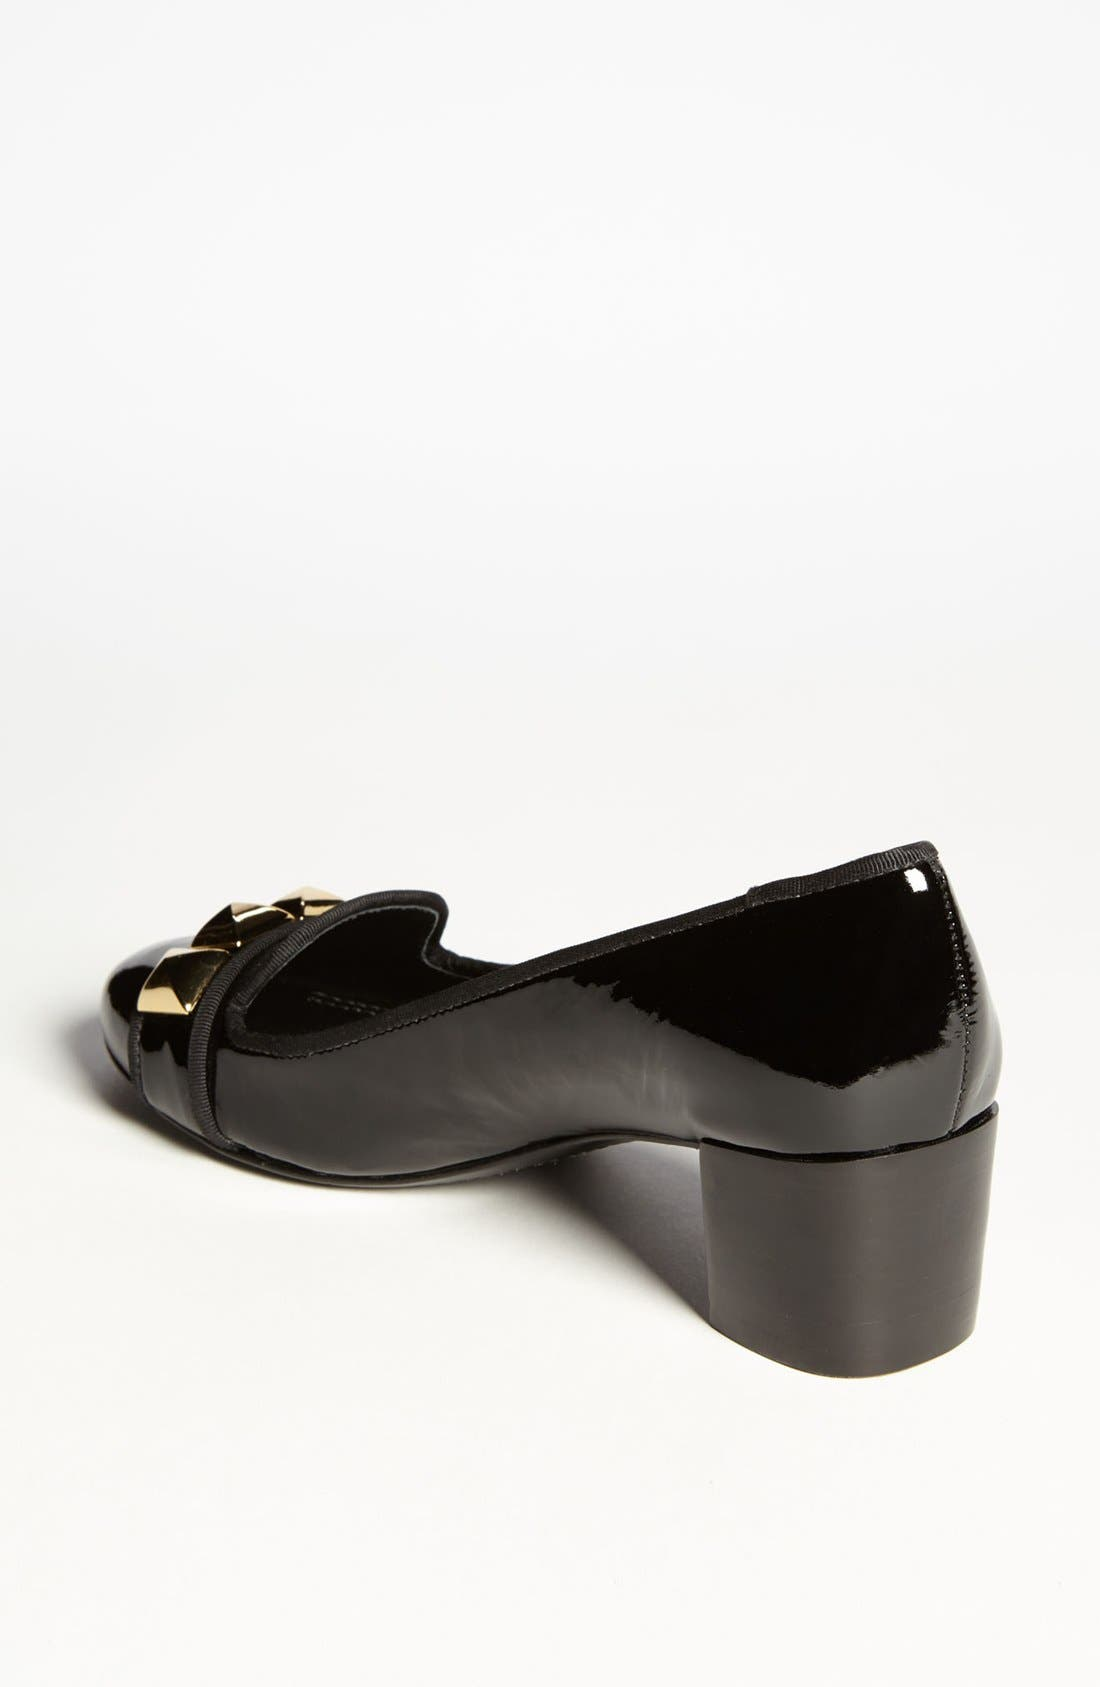 Alternate Image 2  - Tory Burch 'Asher' Pump (Nordstrom Exclusive)